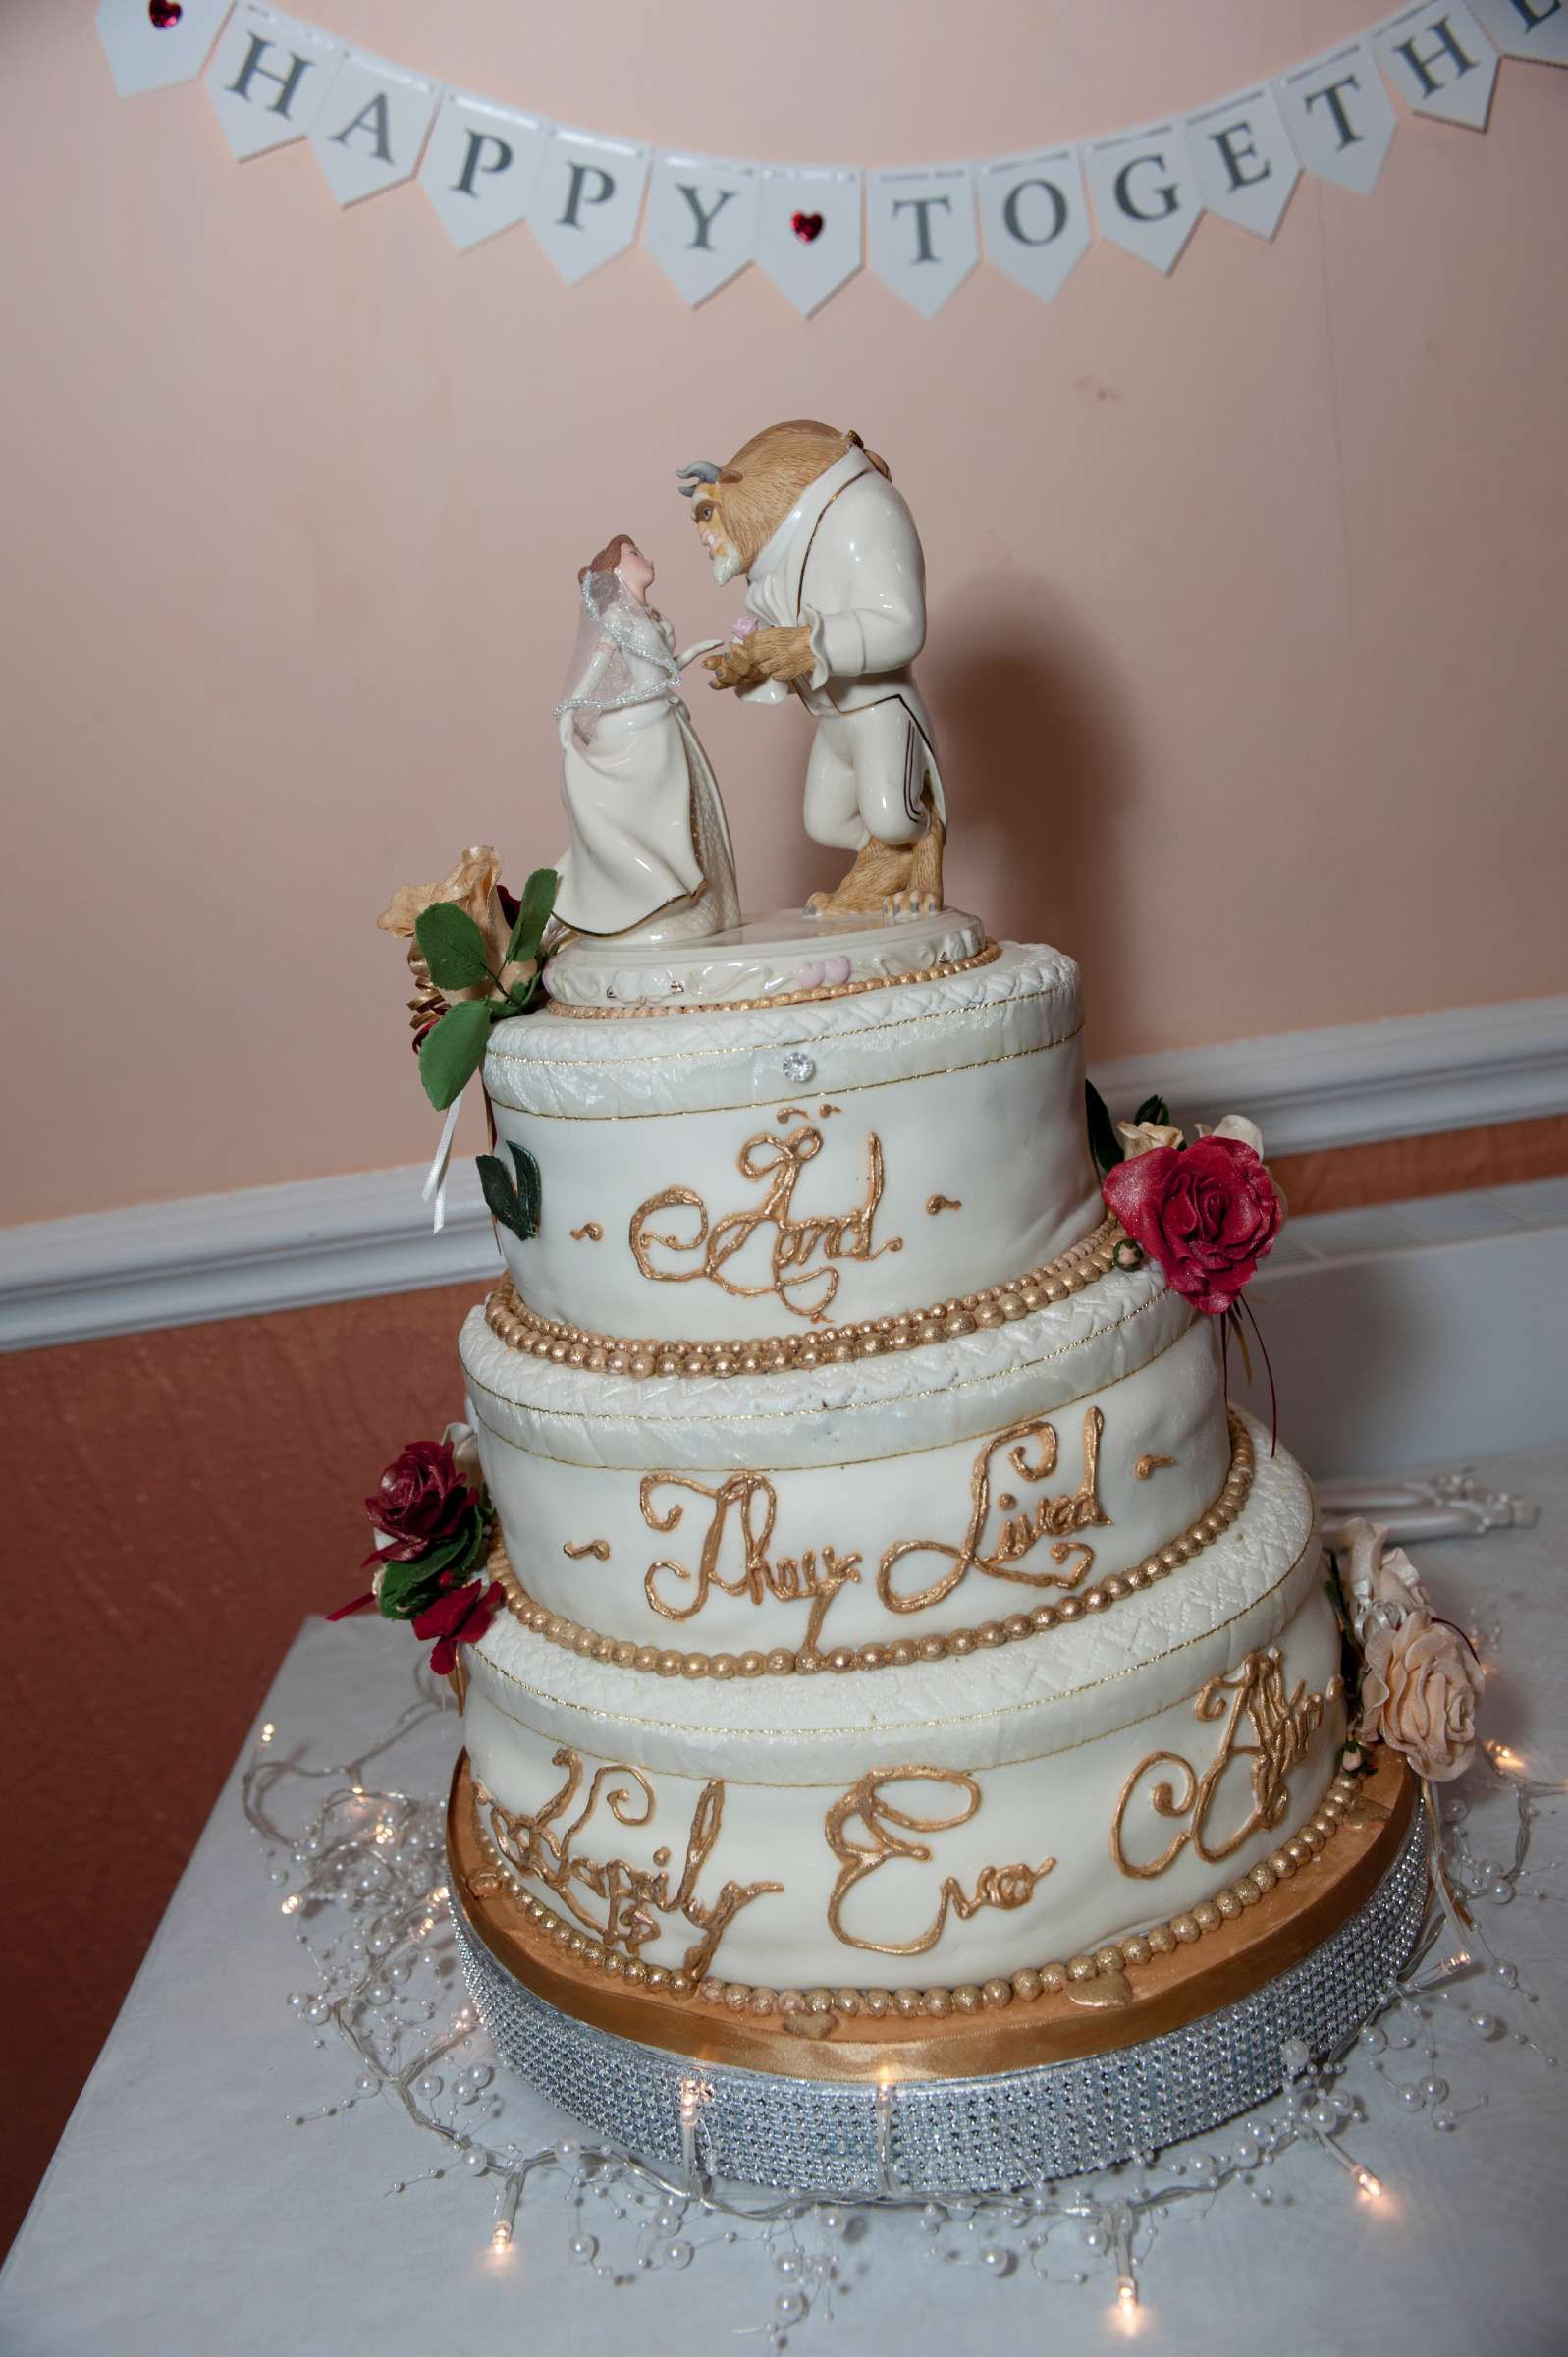 beauty and the beast wedding - Google Search | Wedding cakes ...